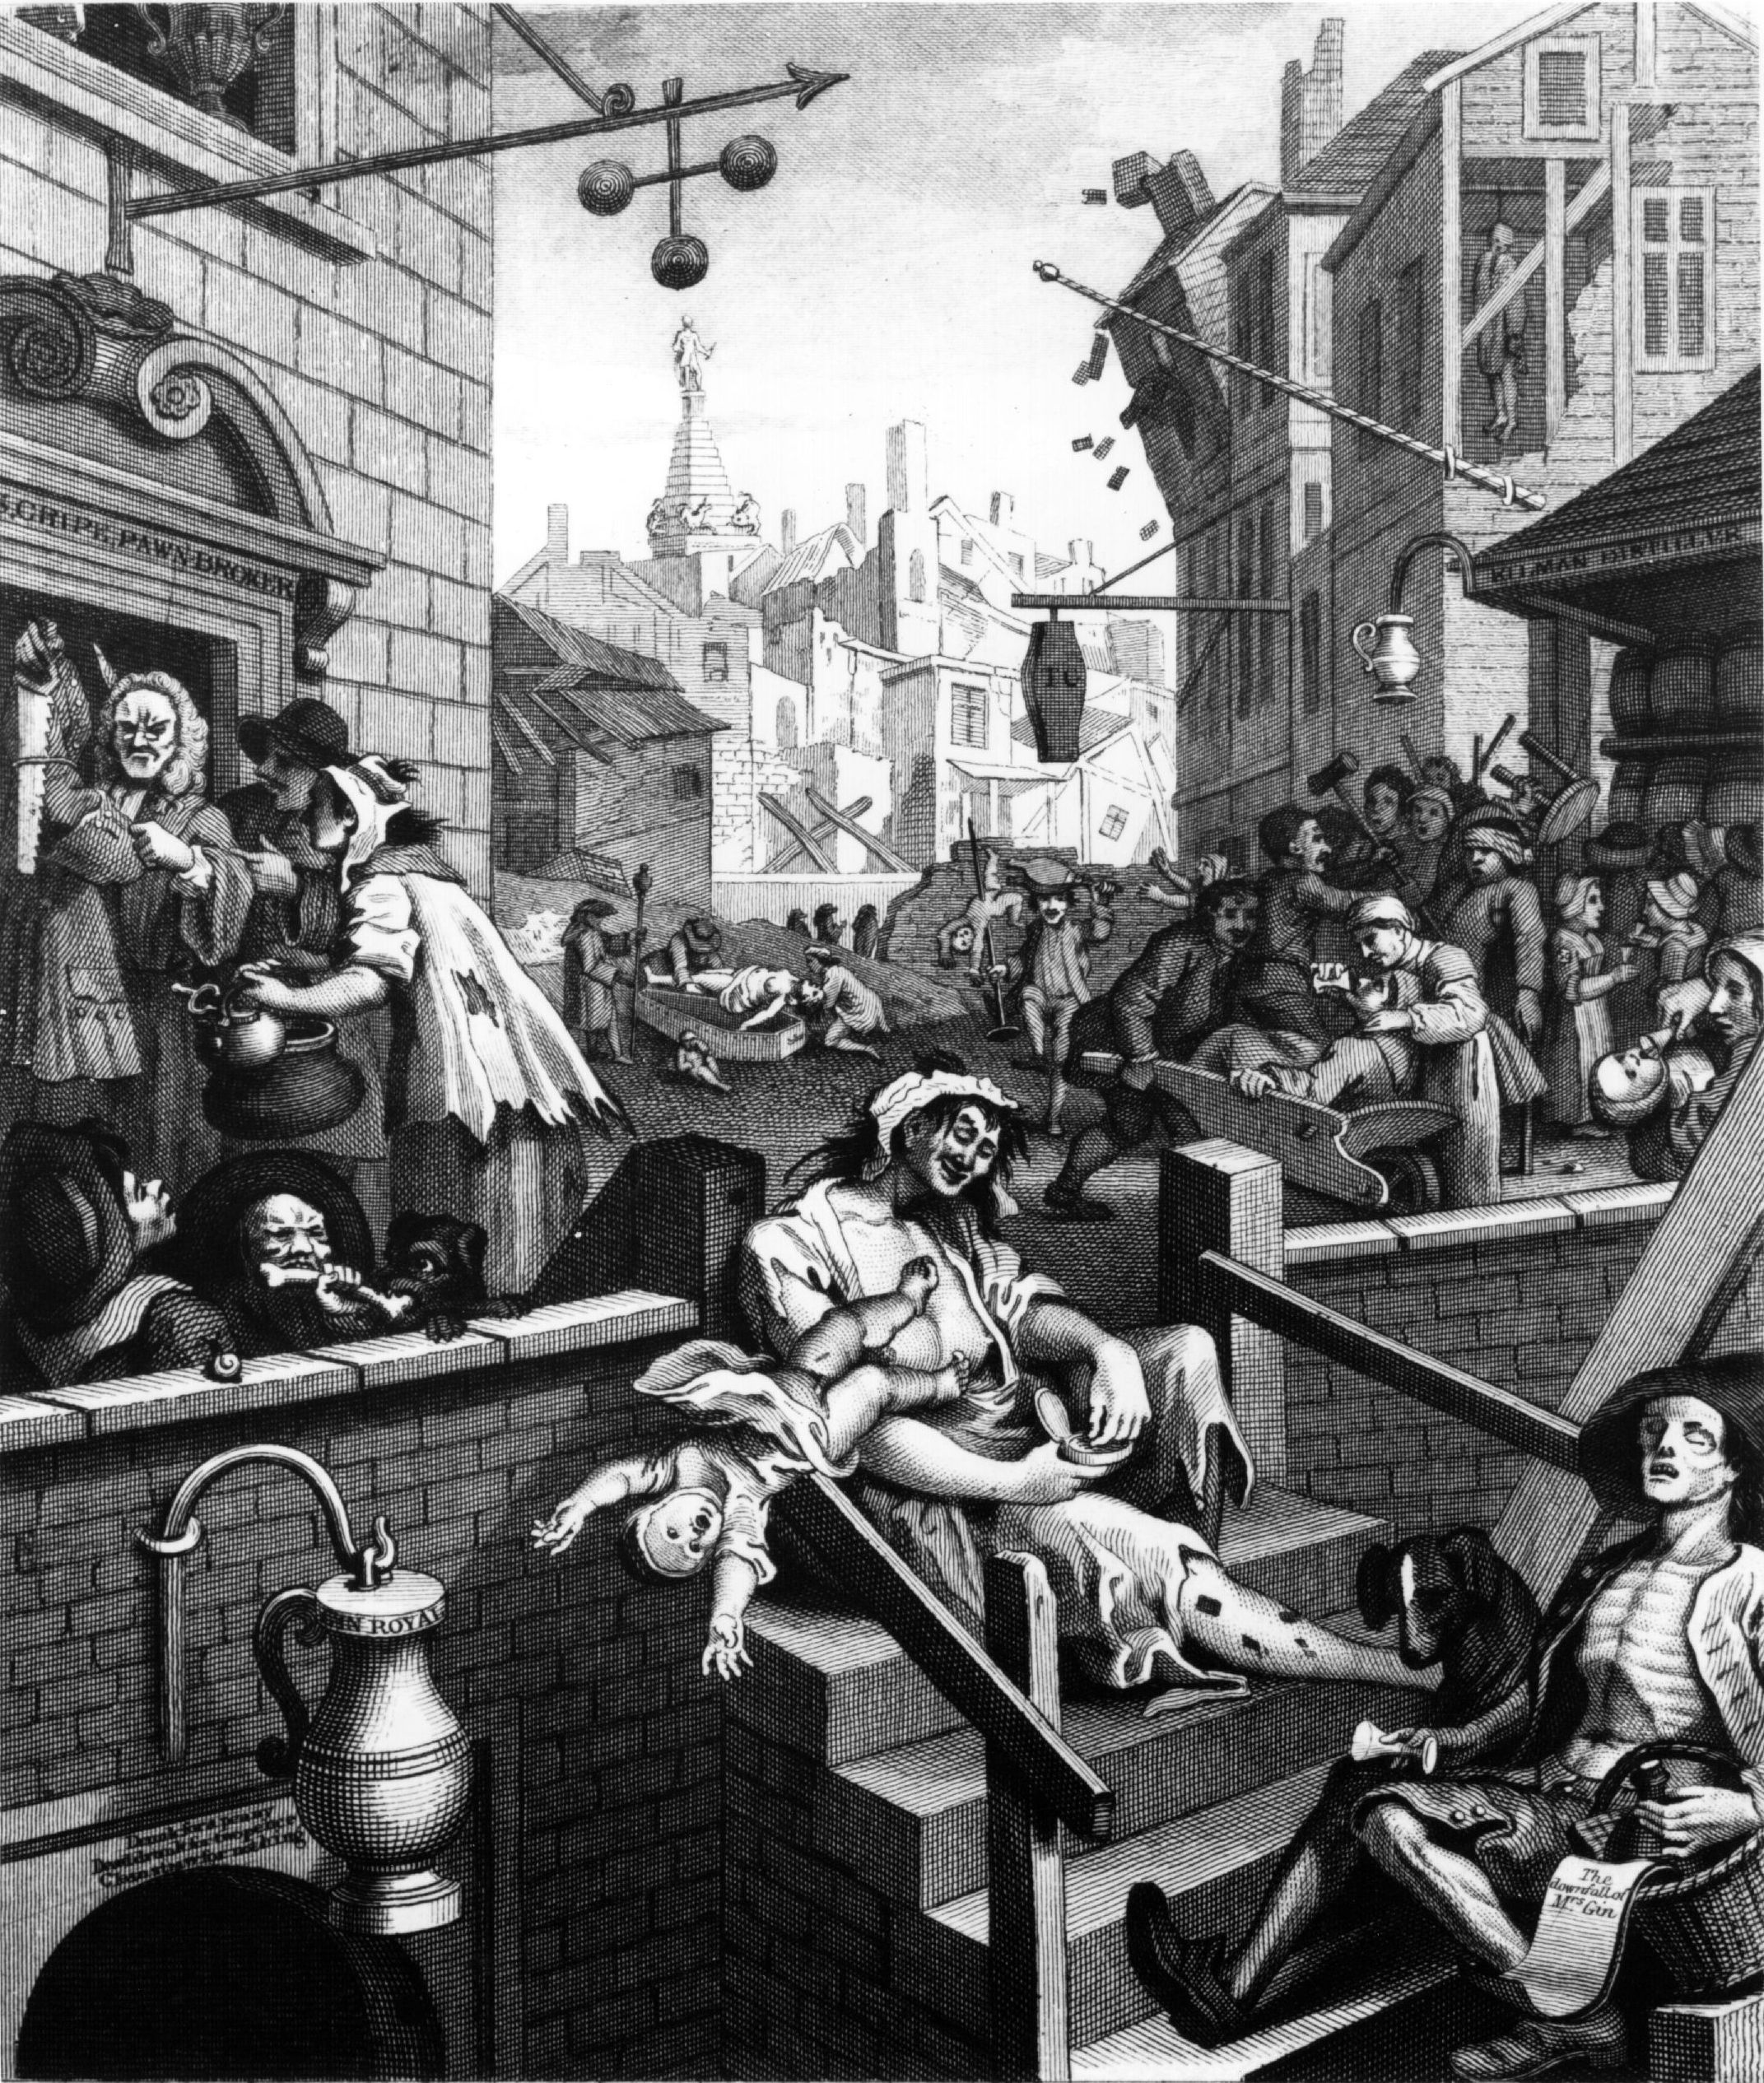 William Hogarth's Gin Lane (1751) was part of a campaign to reduce gin consumption in England.